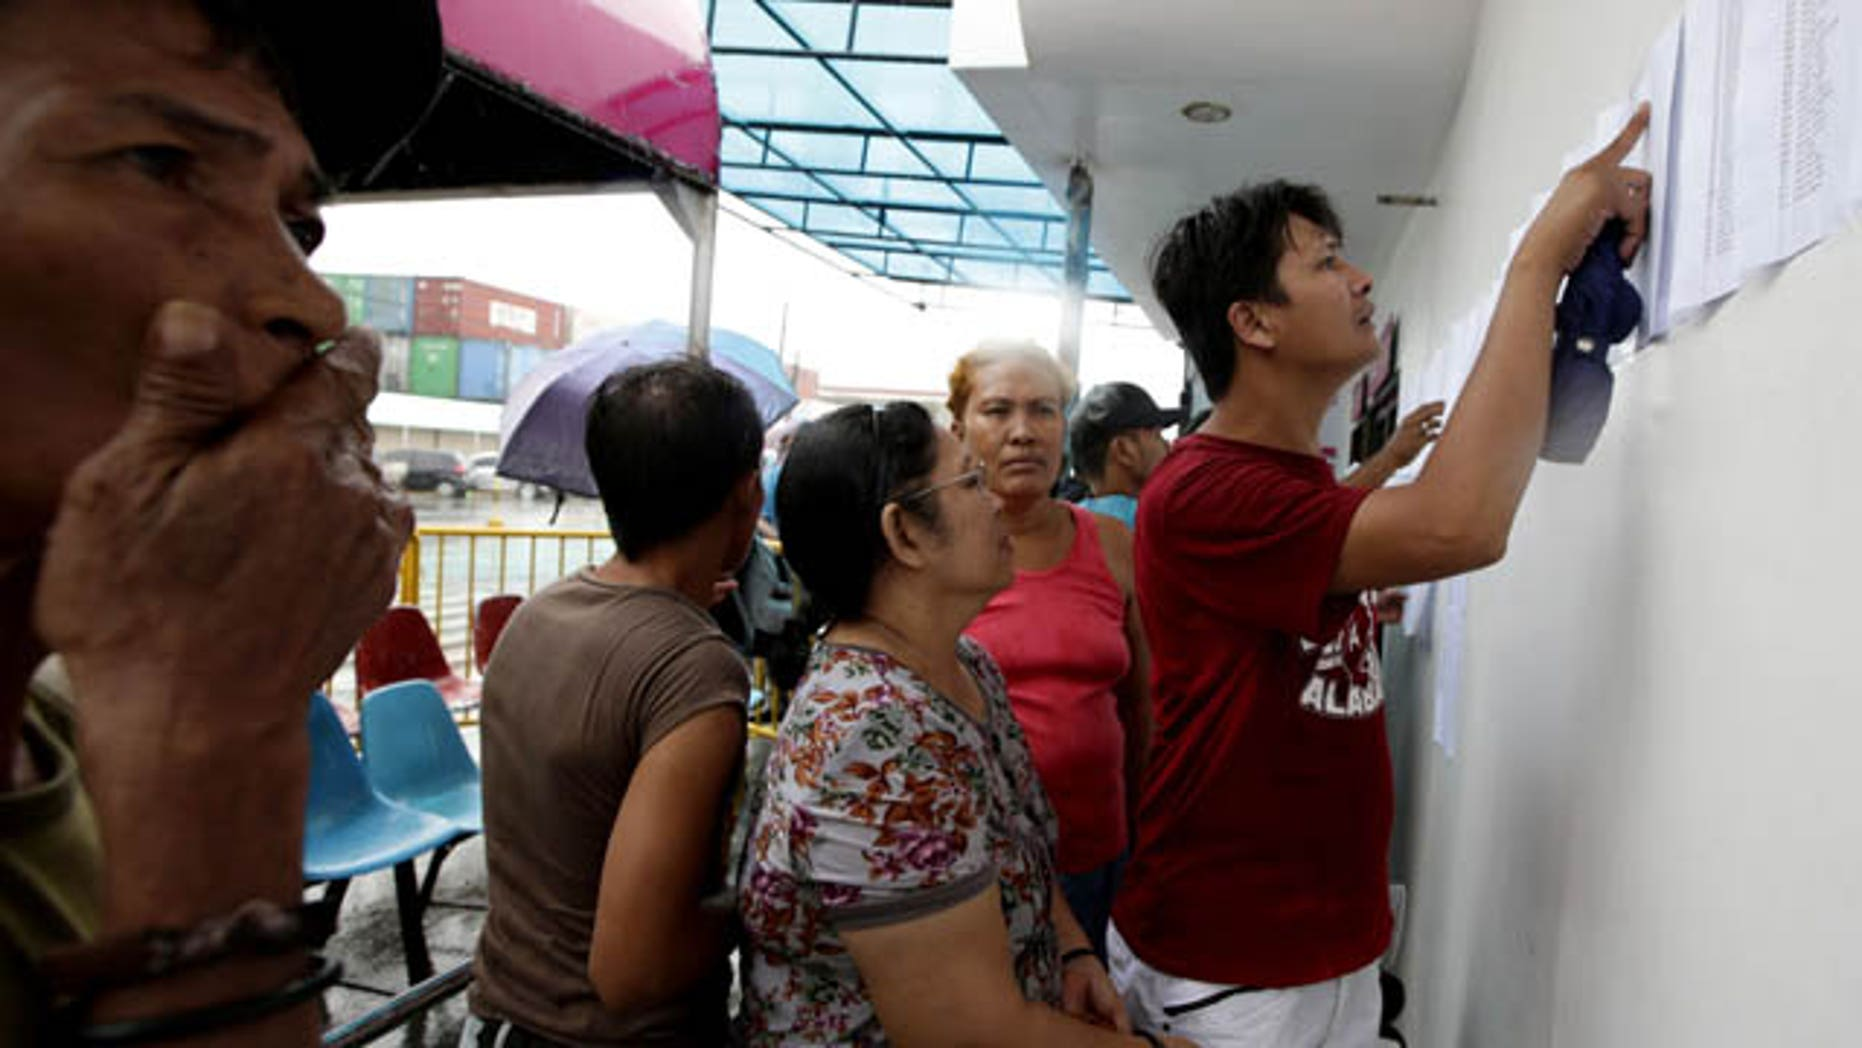 August 17, 2013: Relatives check the lists of survivors and the still-missing passengers and crew of the ill-fated passenger ferry MV Thomas Aquinas, outside the ticketing office of a shipping company. (AP Photo)